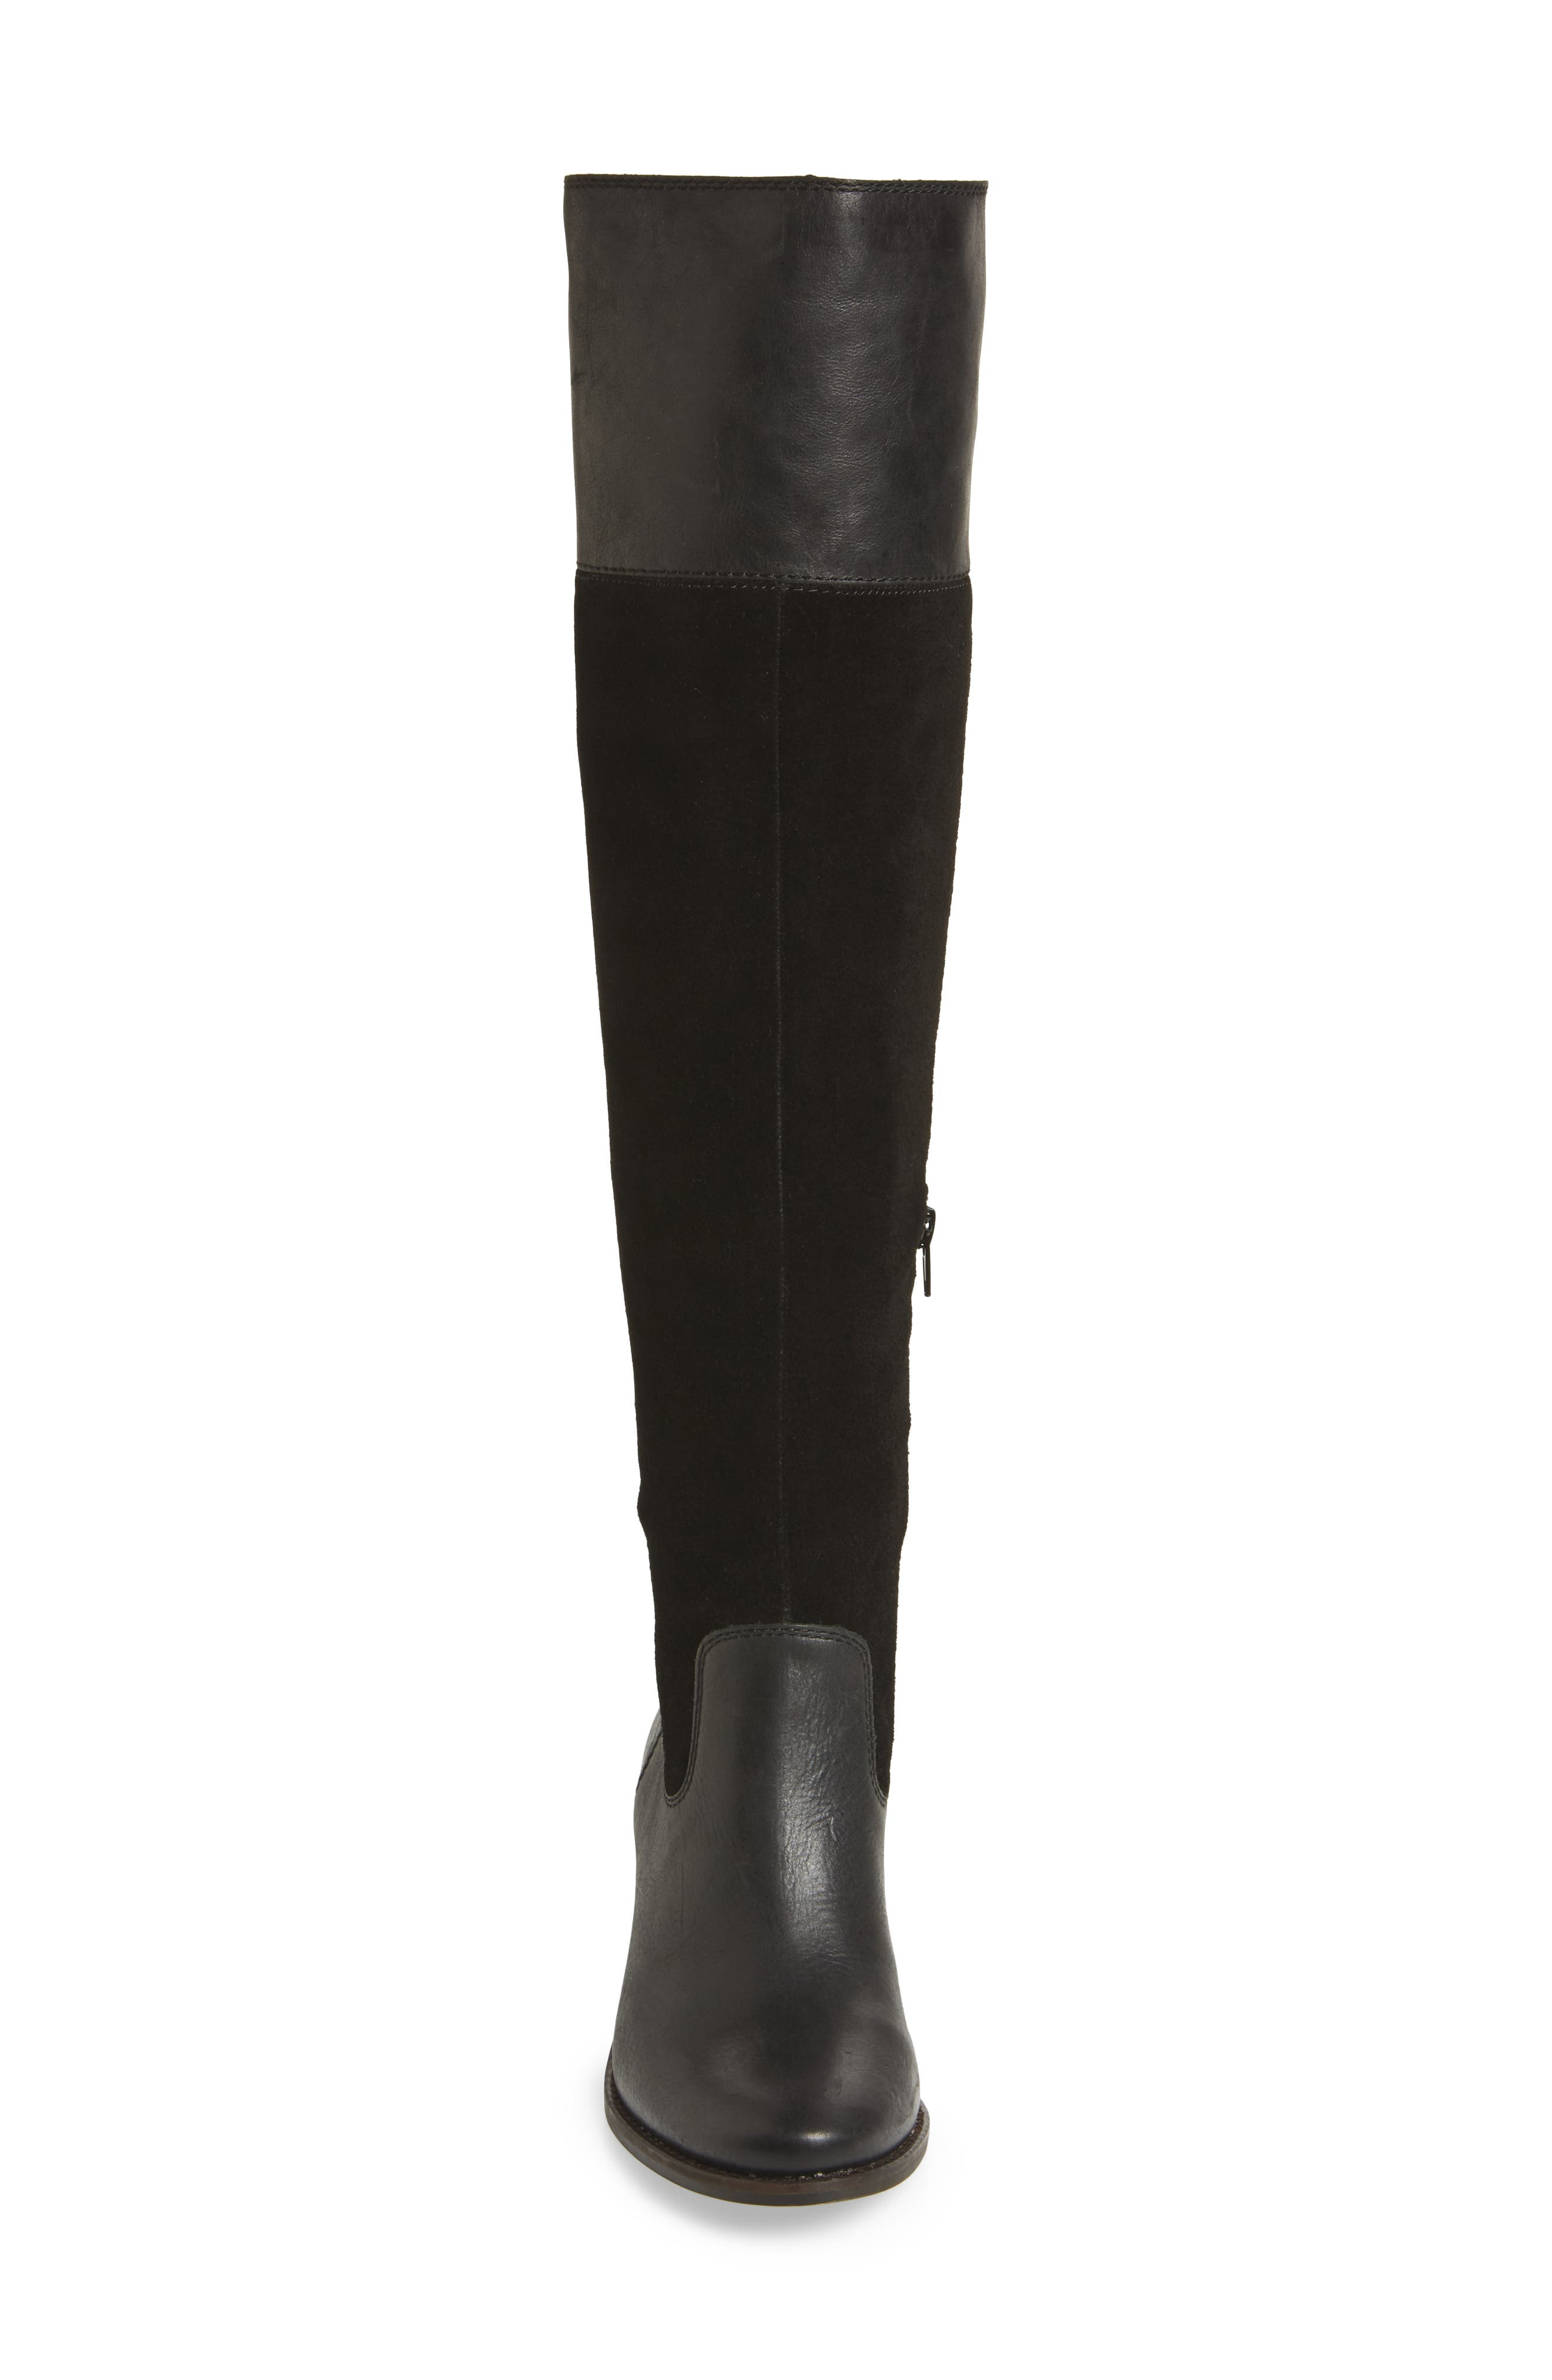 Komah Over the Knee Boot,                             Alternate thumbnail 4, color,                             001